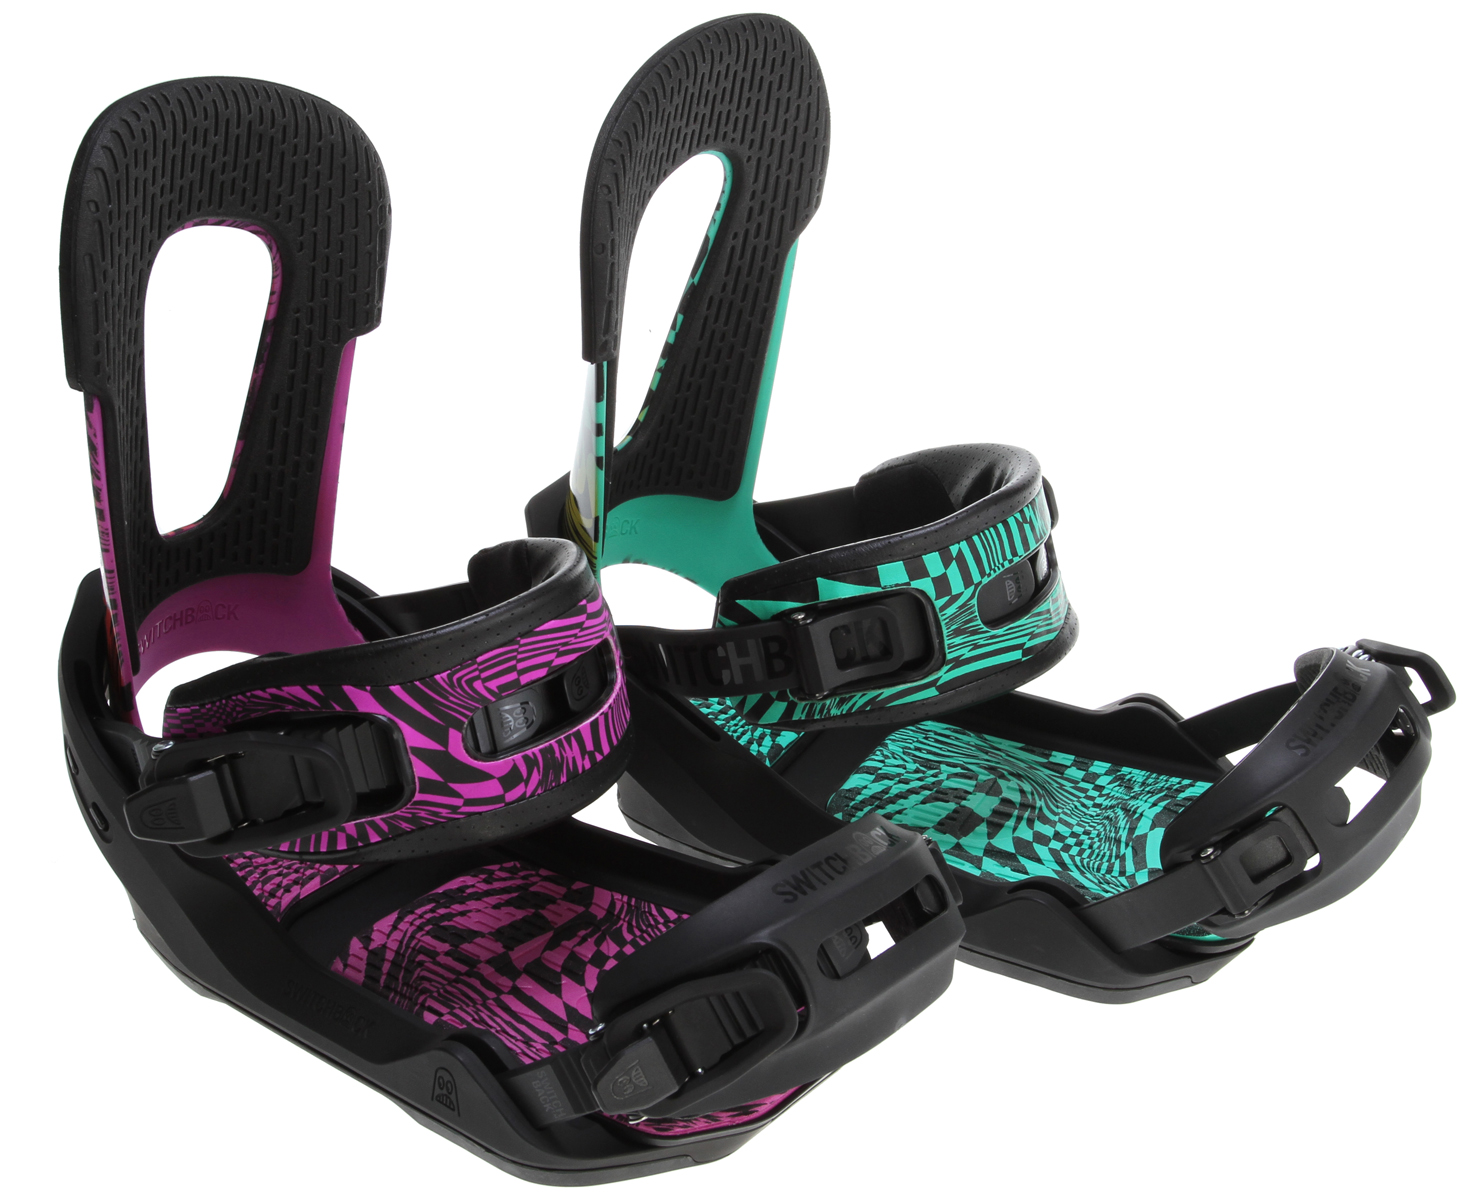 Snowboard TOTALLY TOOL-LESS! Switch your highback, straps and padding without tools. Go from highback to no-back and switch back again anywhere easily in seconds.Key Features of the Switchback Eiki Pro Snowboard Bindings: TOOL-LESS STRAP CONNECTION: Swap ankle straps or adjust their position quickly without the need for screws or tools. NO-BACK INSERT: Swap a highback for the no-back insert for a surf feel on a pow day or skate-like ride in the rail park. Snap in, snap out ...Easy! TOOL-LESS HIGHBACK: Change highbacks in seconds with the Switchback tool-less mounting system. Works even when you are out riding so you can always keep your options open. NATURAL PIVOT FORWARD LEAN: Adjust your forward lean around the most natural pivot point. No boot movement and no gaps makes for a better fit. OFFSET DISC OPTION: We deliver our Bindings: Less plastic to the board means a more natural flex pattern under your boot. HEEL IMPACT PAD: We took out almost all the hard stuff under your heel and replaced it with a big soft cushioning padding block to dampen impact on those hard heelside landings. TOOL-LESS FOOTPAD: No more annoying screw to get to your disc! Change the padding, adjust the toe ramp position and access the mounting disc without tools. Choose from 4 positions. BUMPER CORNERS: Extra dampening in the corners of your base padding protects your board from wear and impact damage. DIRECT STEERING: Thinner padding in the right places makes for a smoother transfer of power to your board. Thicker corner base padding helps dampen impact. - $167.95